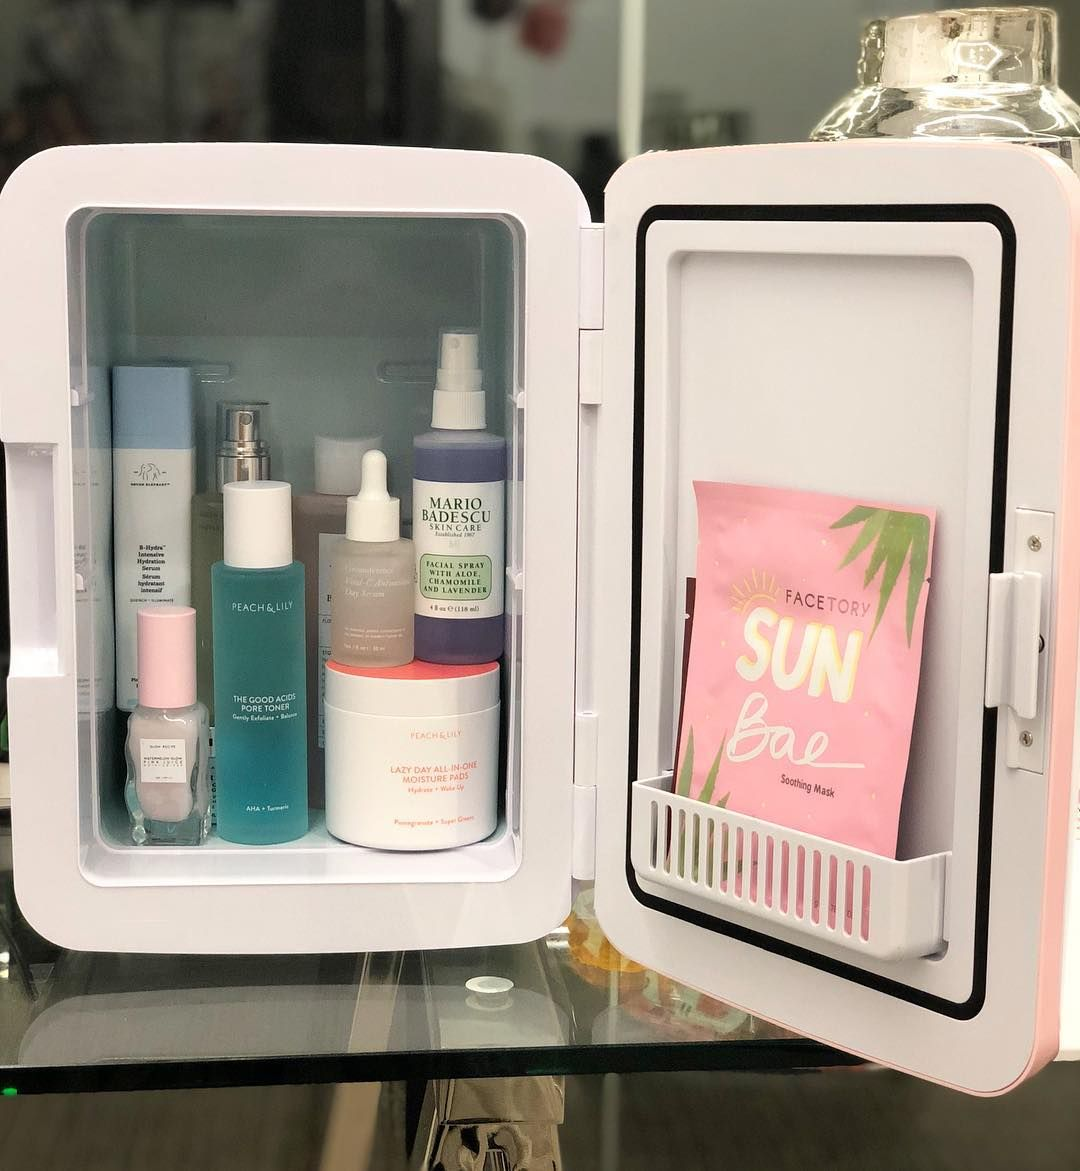 We All Know The Oh So Satisfying Feeling Of A Cool Refreshing Lotion On Parched Bothered Skin But Should You Go So Fa Skin Care Beauty Care Beauty Skin Care